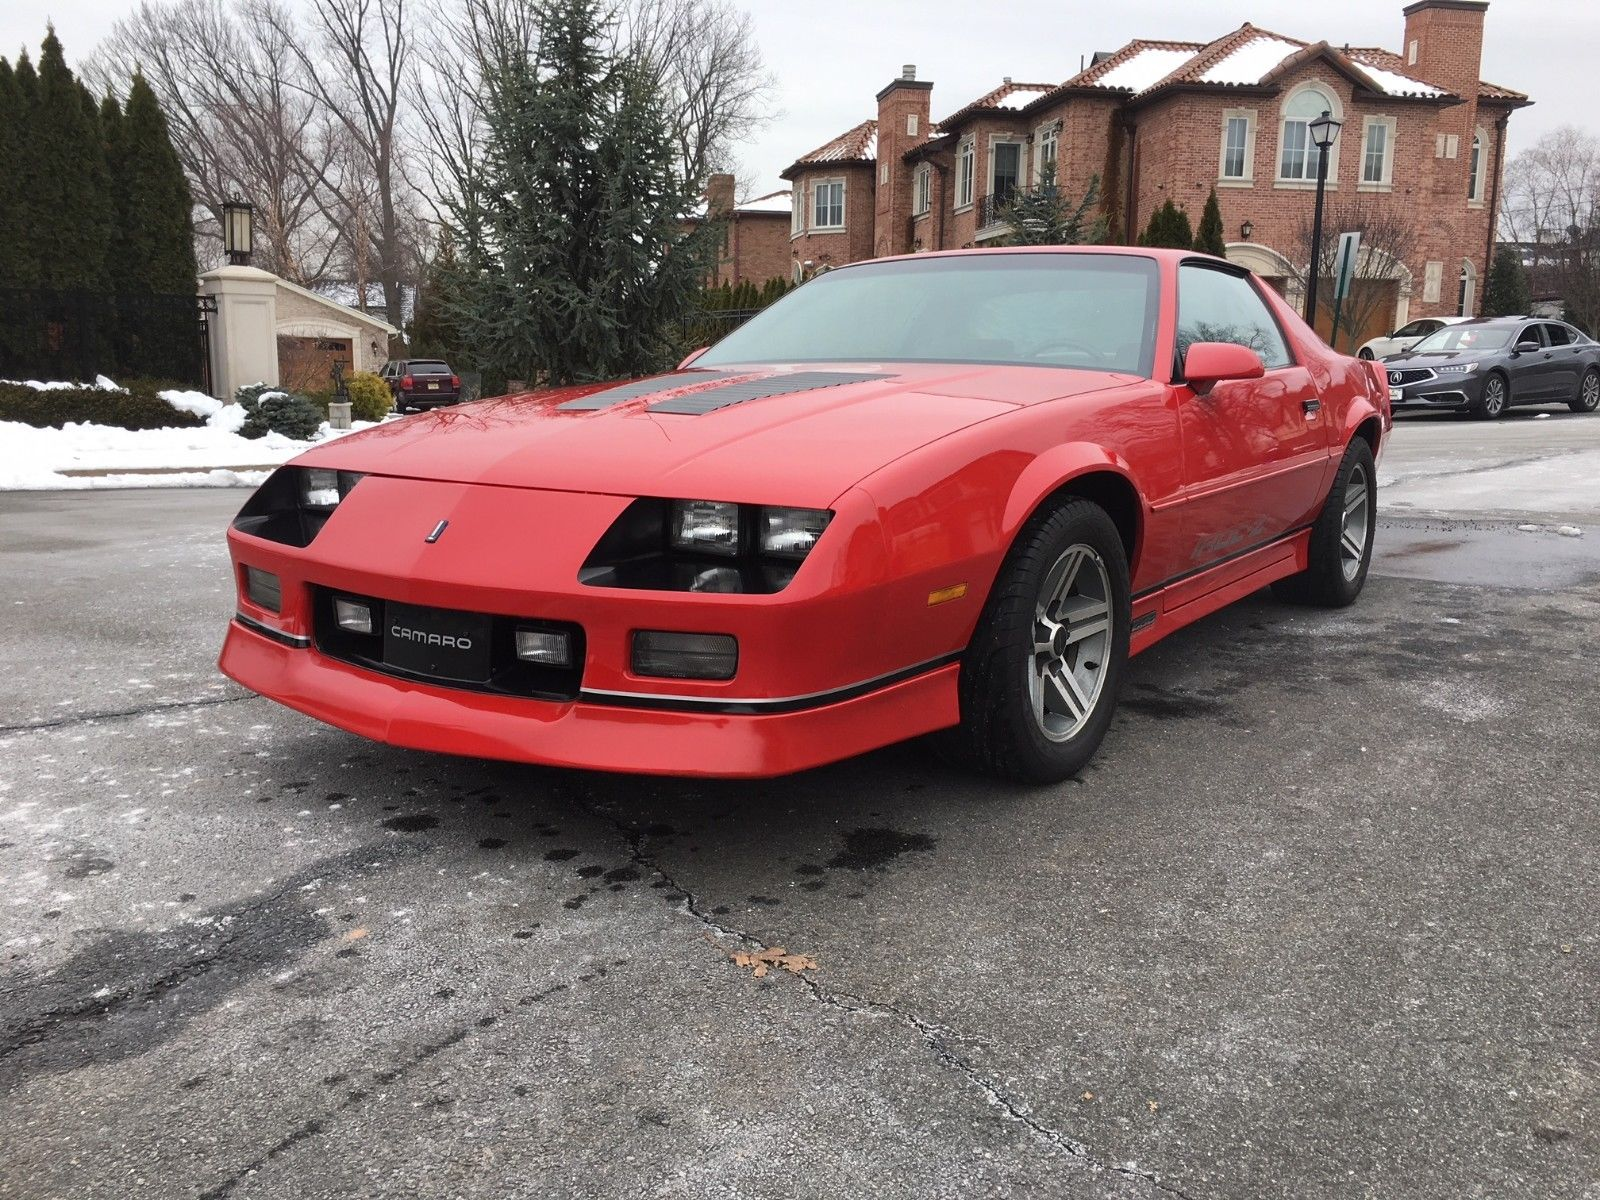 Awesome 1986 Chevrolet Camaro Iroc Z28 1986 Chevrolet Camaro Iroc Z28 with  19325 Original Miles!! MUST SEE!! 2018-2019